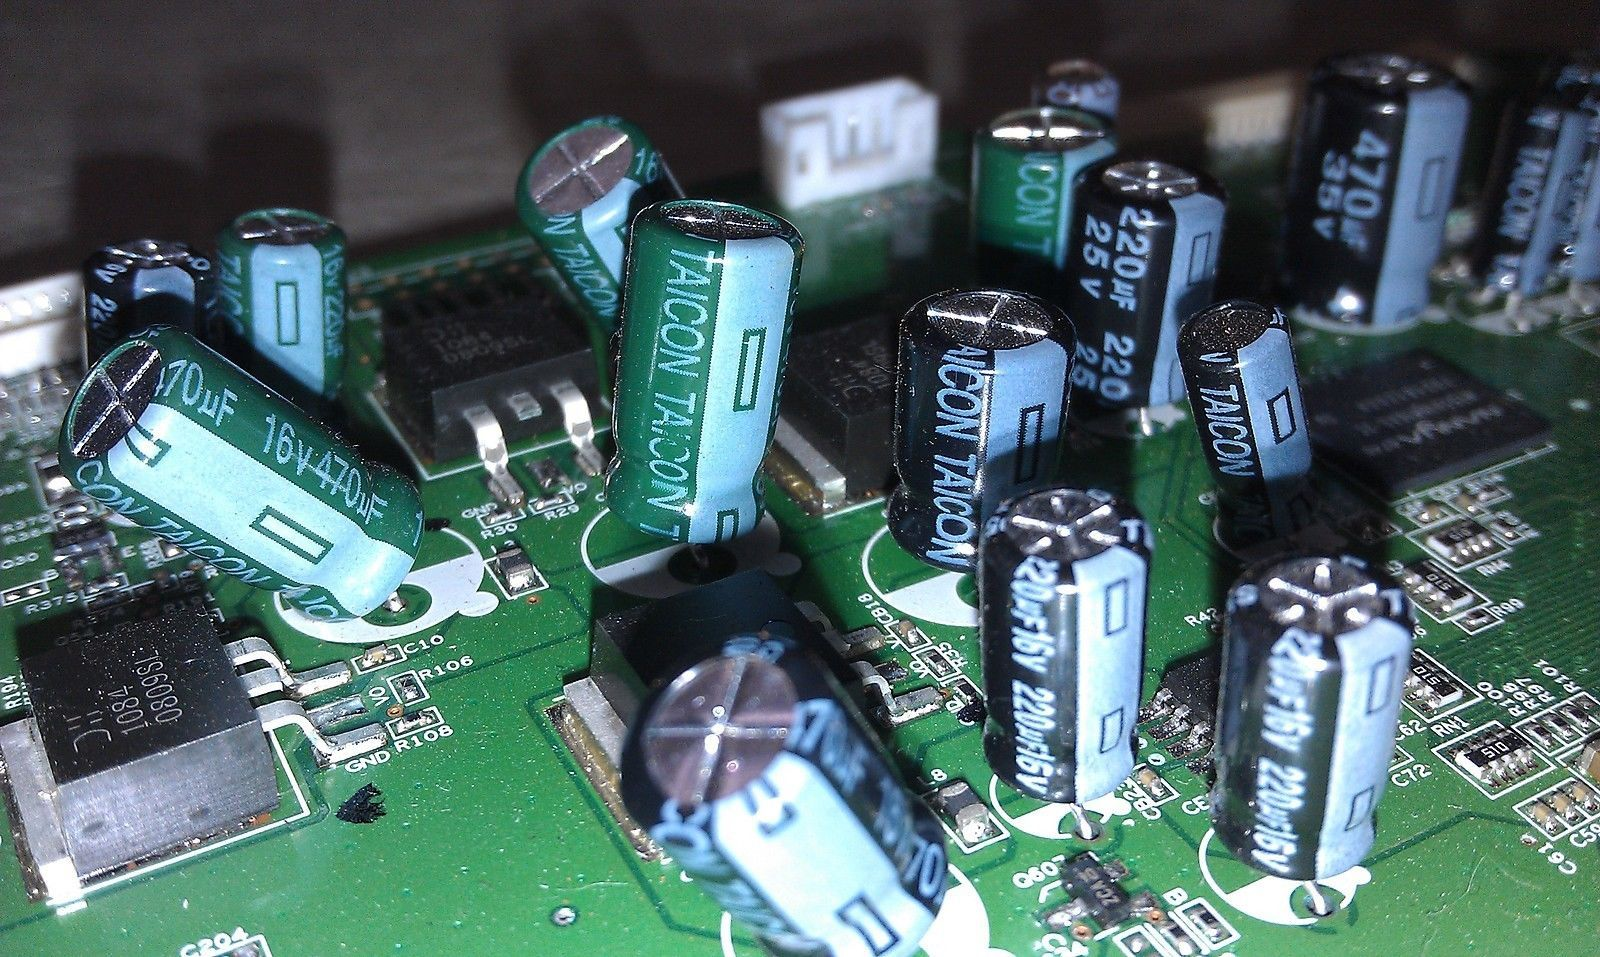 5EE43 ASSORTED SMALL CAPACITORS ON CIRCUIT BOARD, GOOD CONDITION